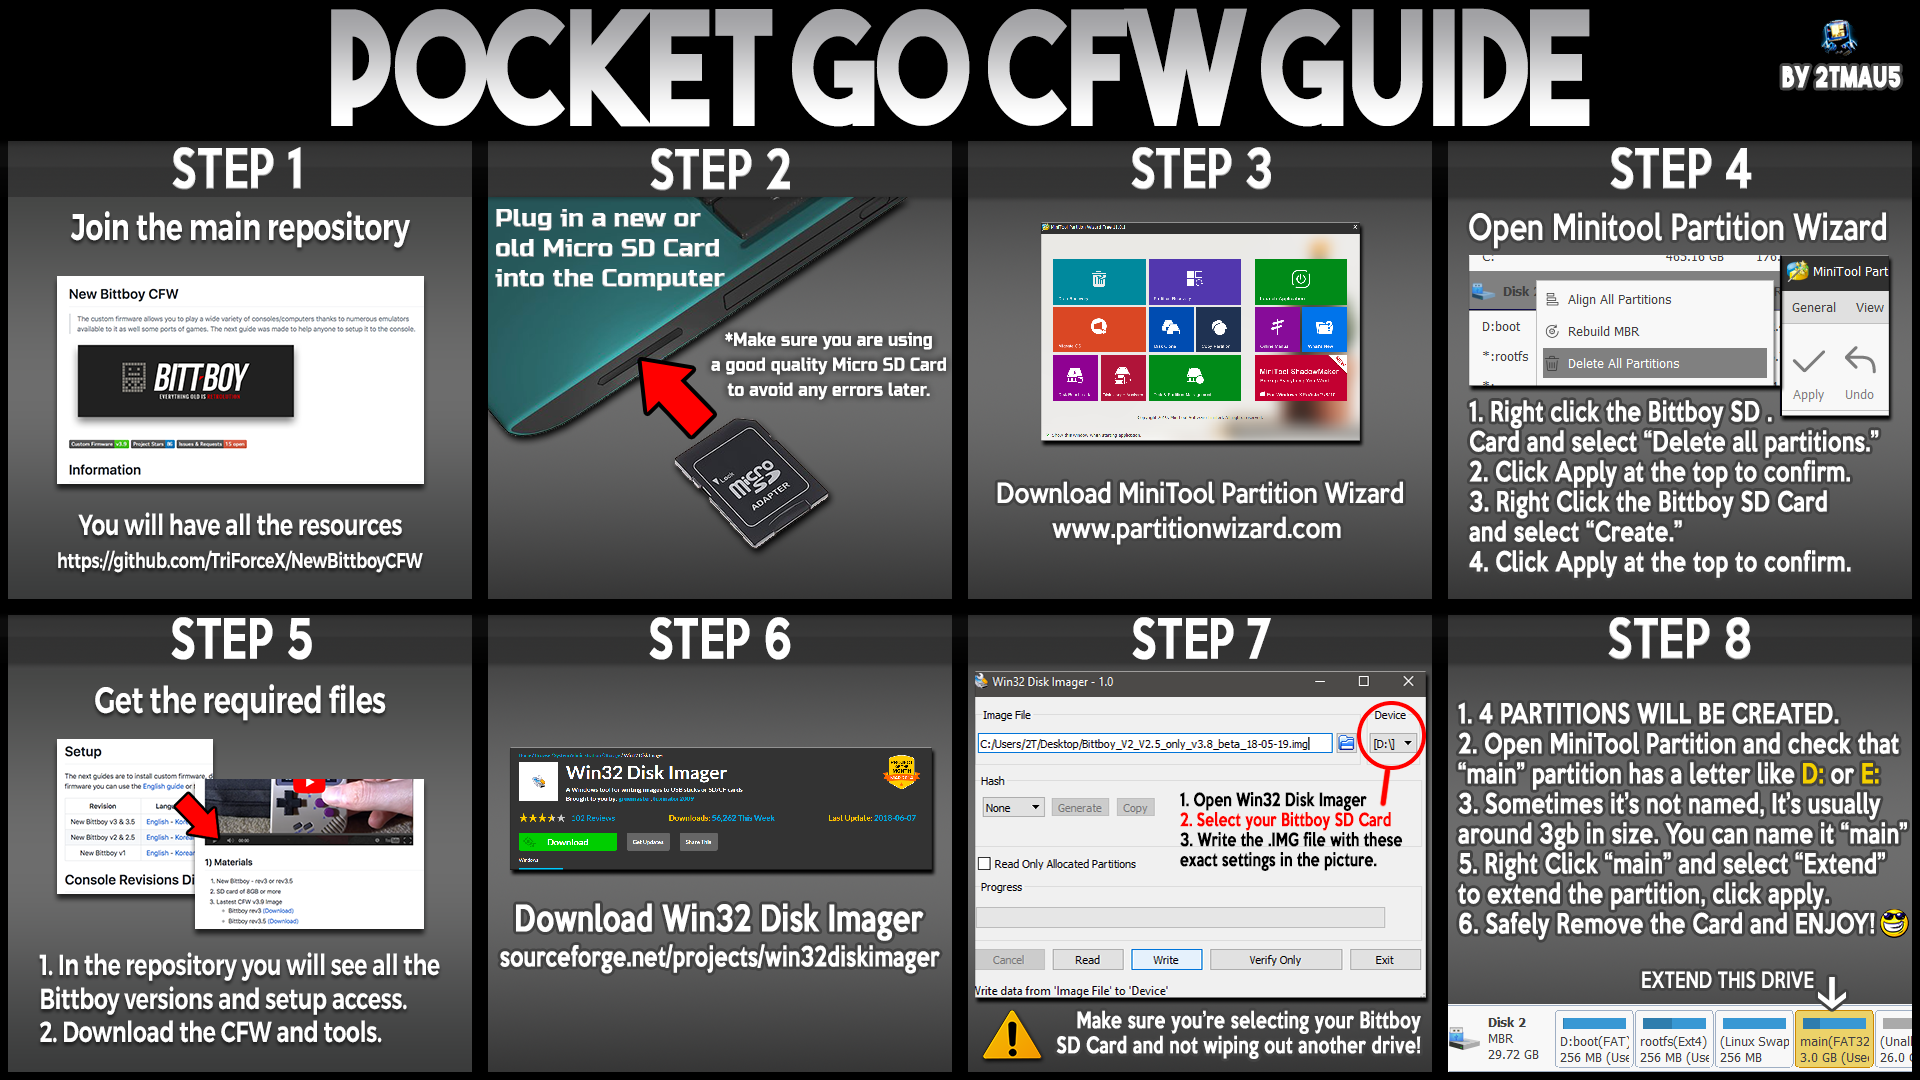 pocketgo-guide